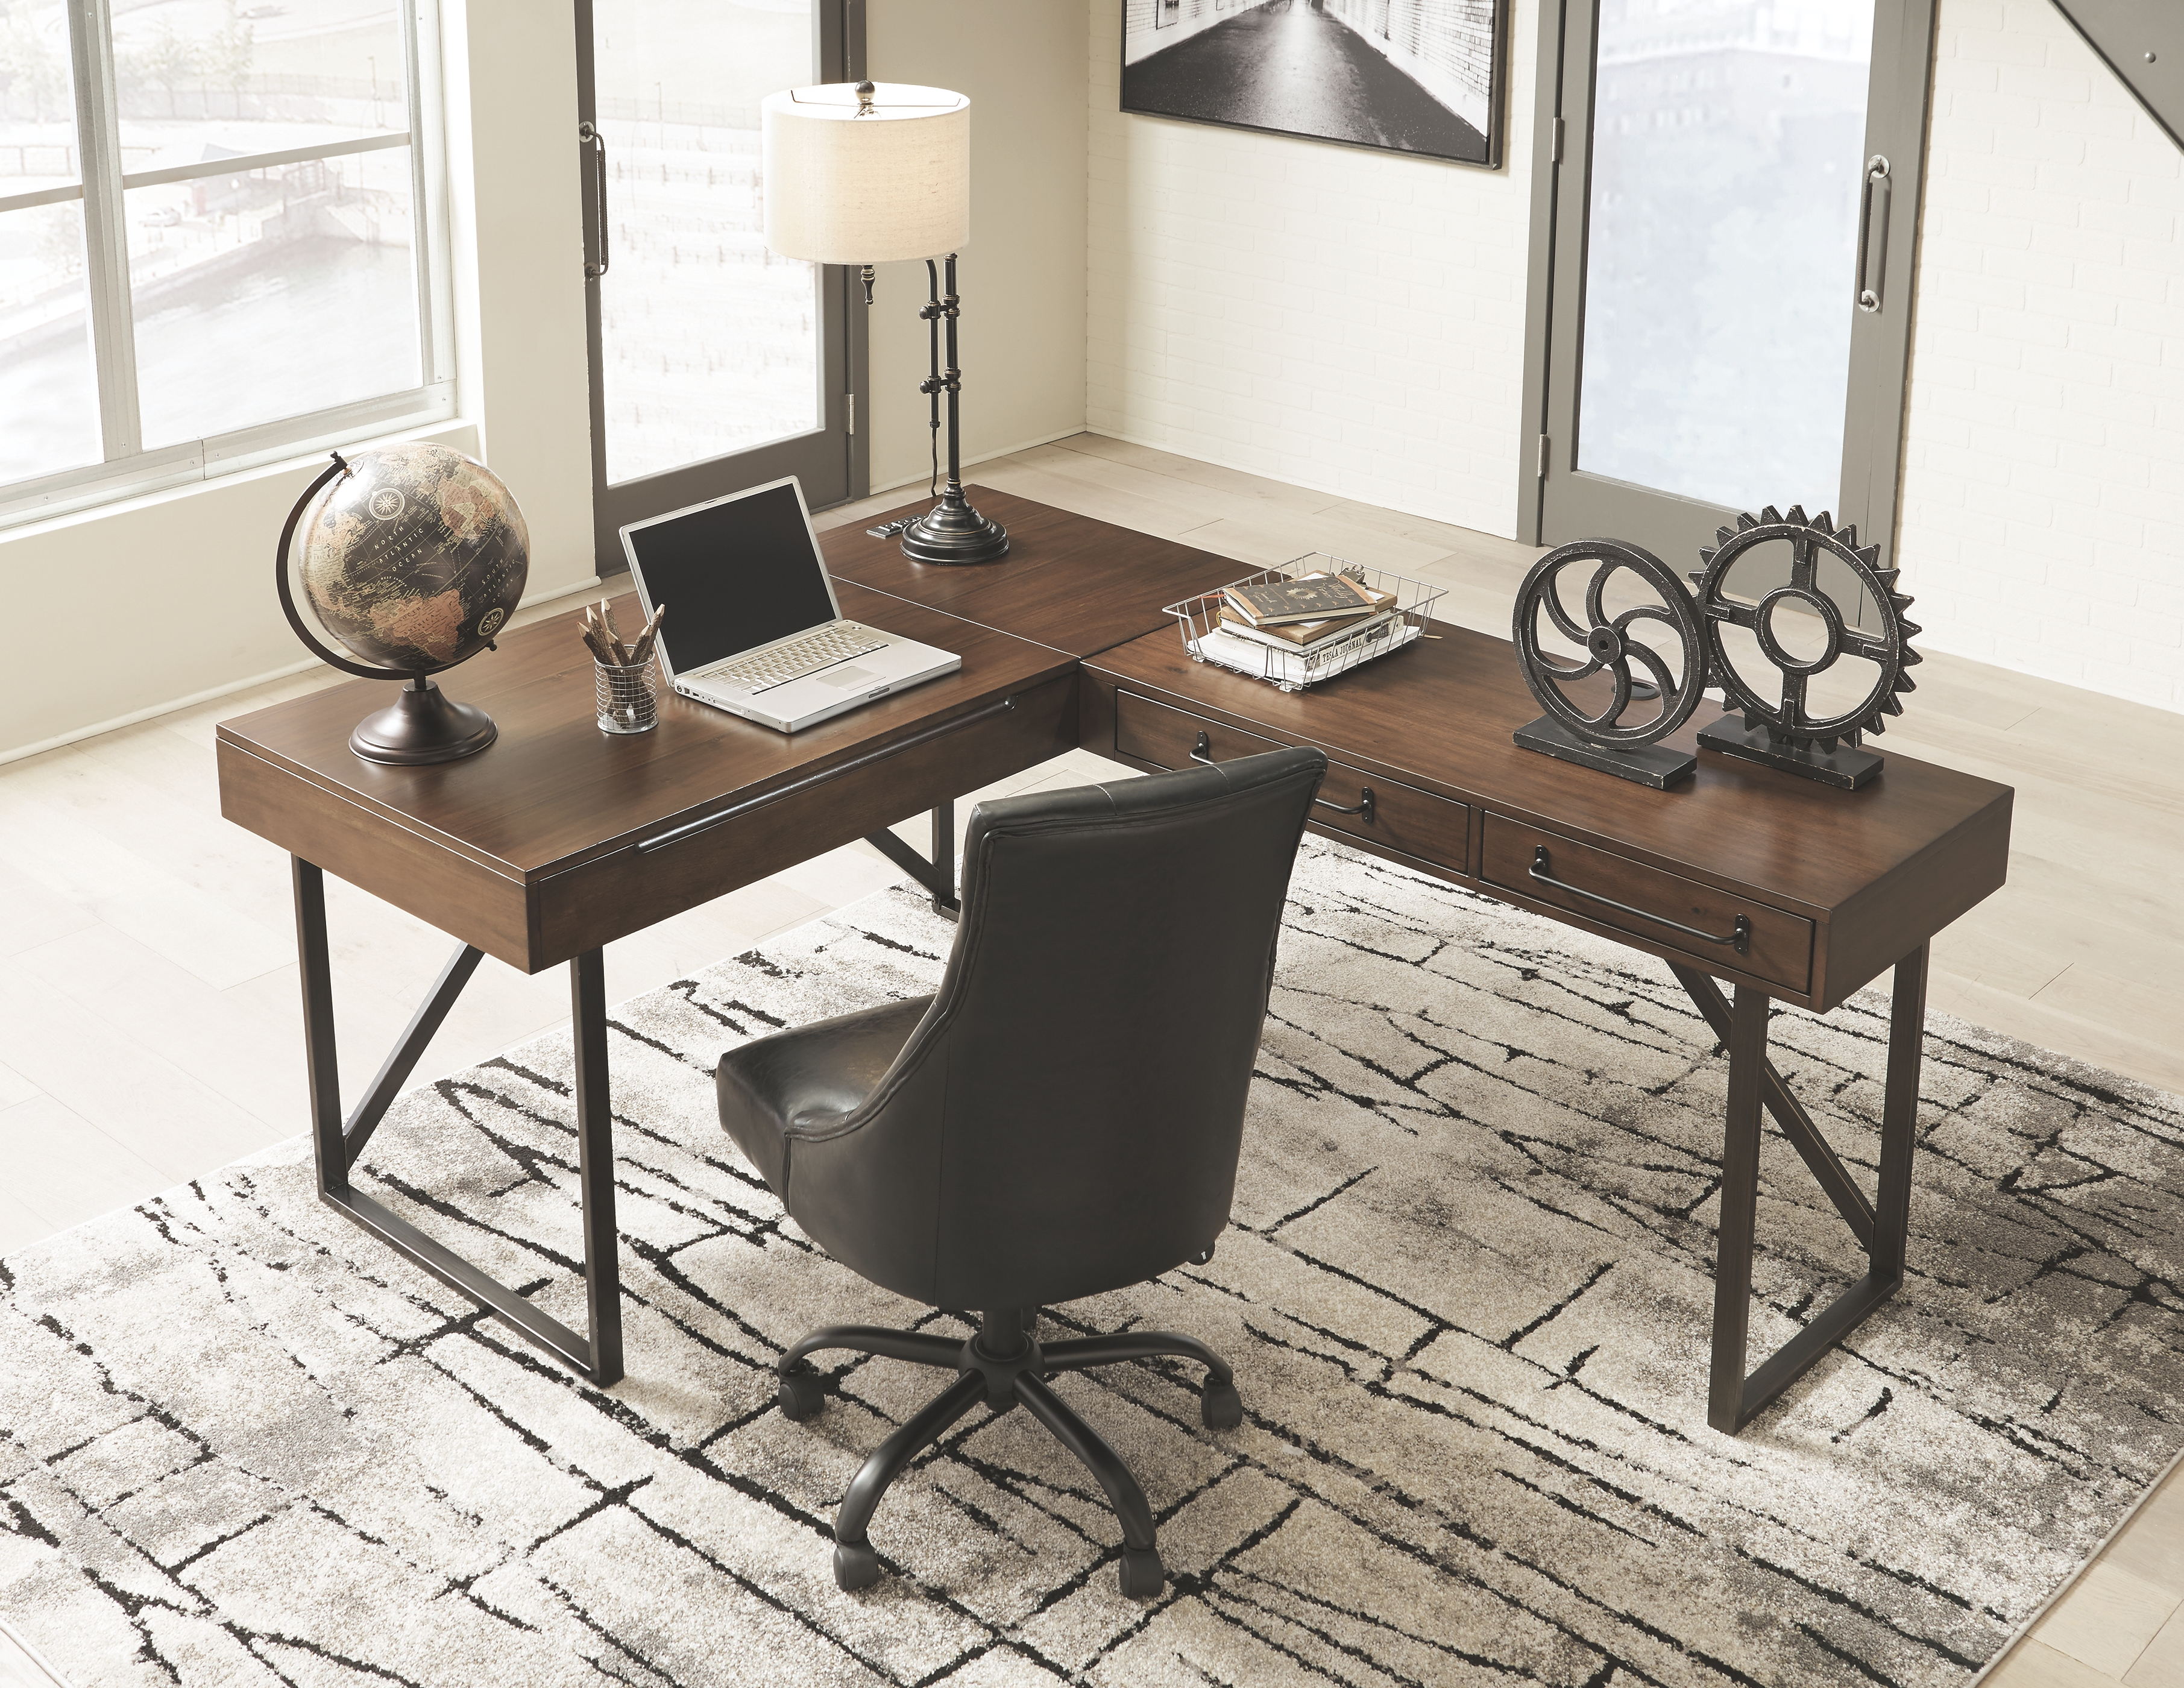 Starmore Home Office Desk By Signature Design By Ashley 267318973 Turner S Budget Furniture